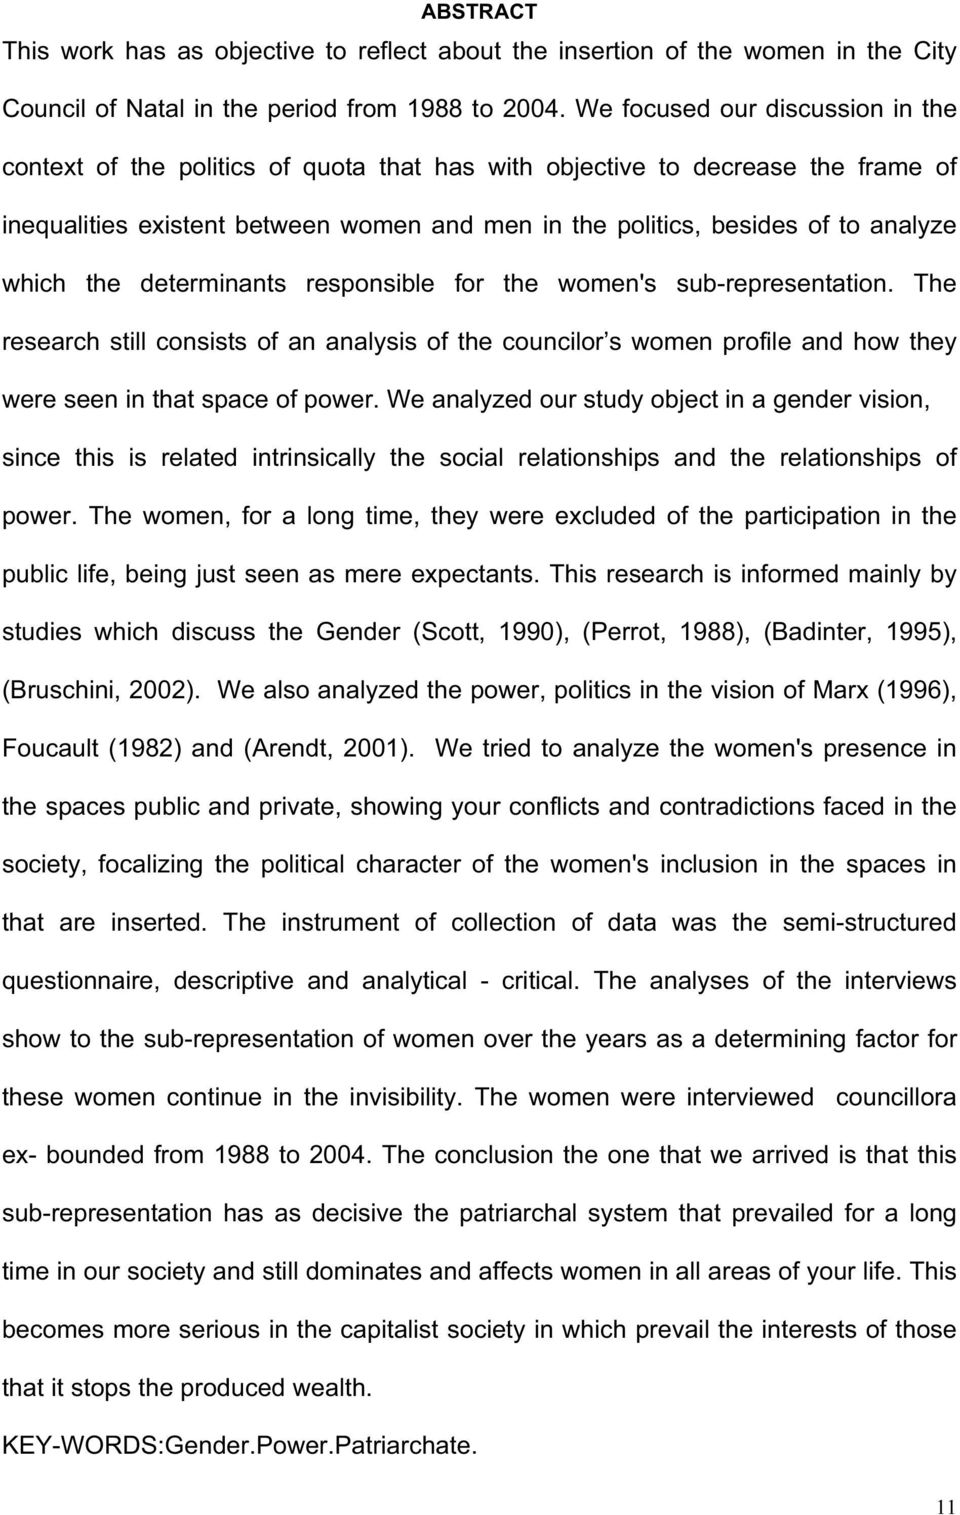 which the determinants responsible for the women's sub-representation. The research still consists of an analysis of the councilor s women profile and how they were seen in that space of power.